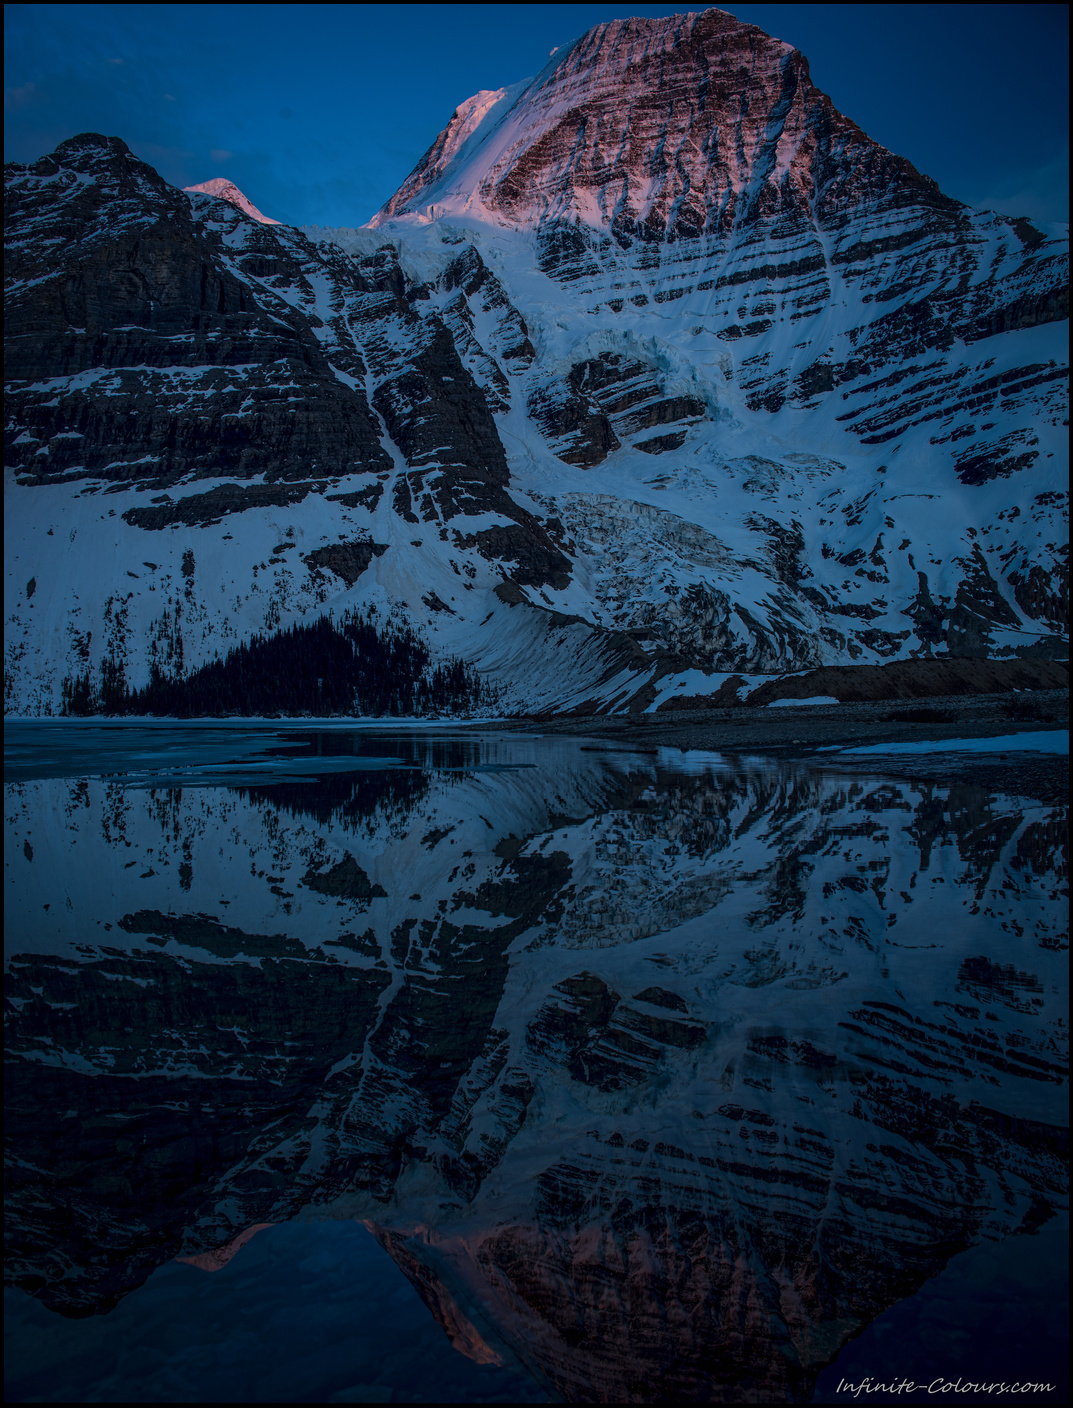 Mount Robson reflections at sunset, Berg Lake / Marmot campsite, Sony A7 / Canon FD Tilt Shift 35